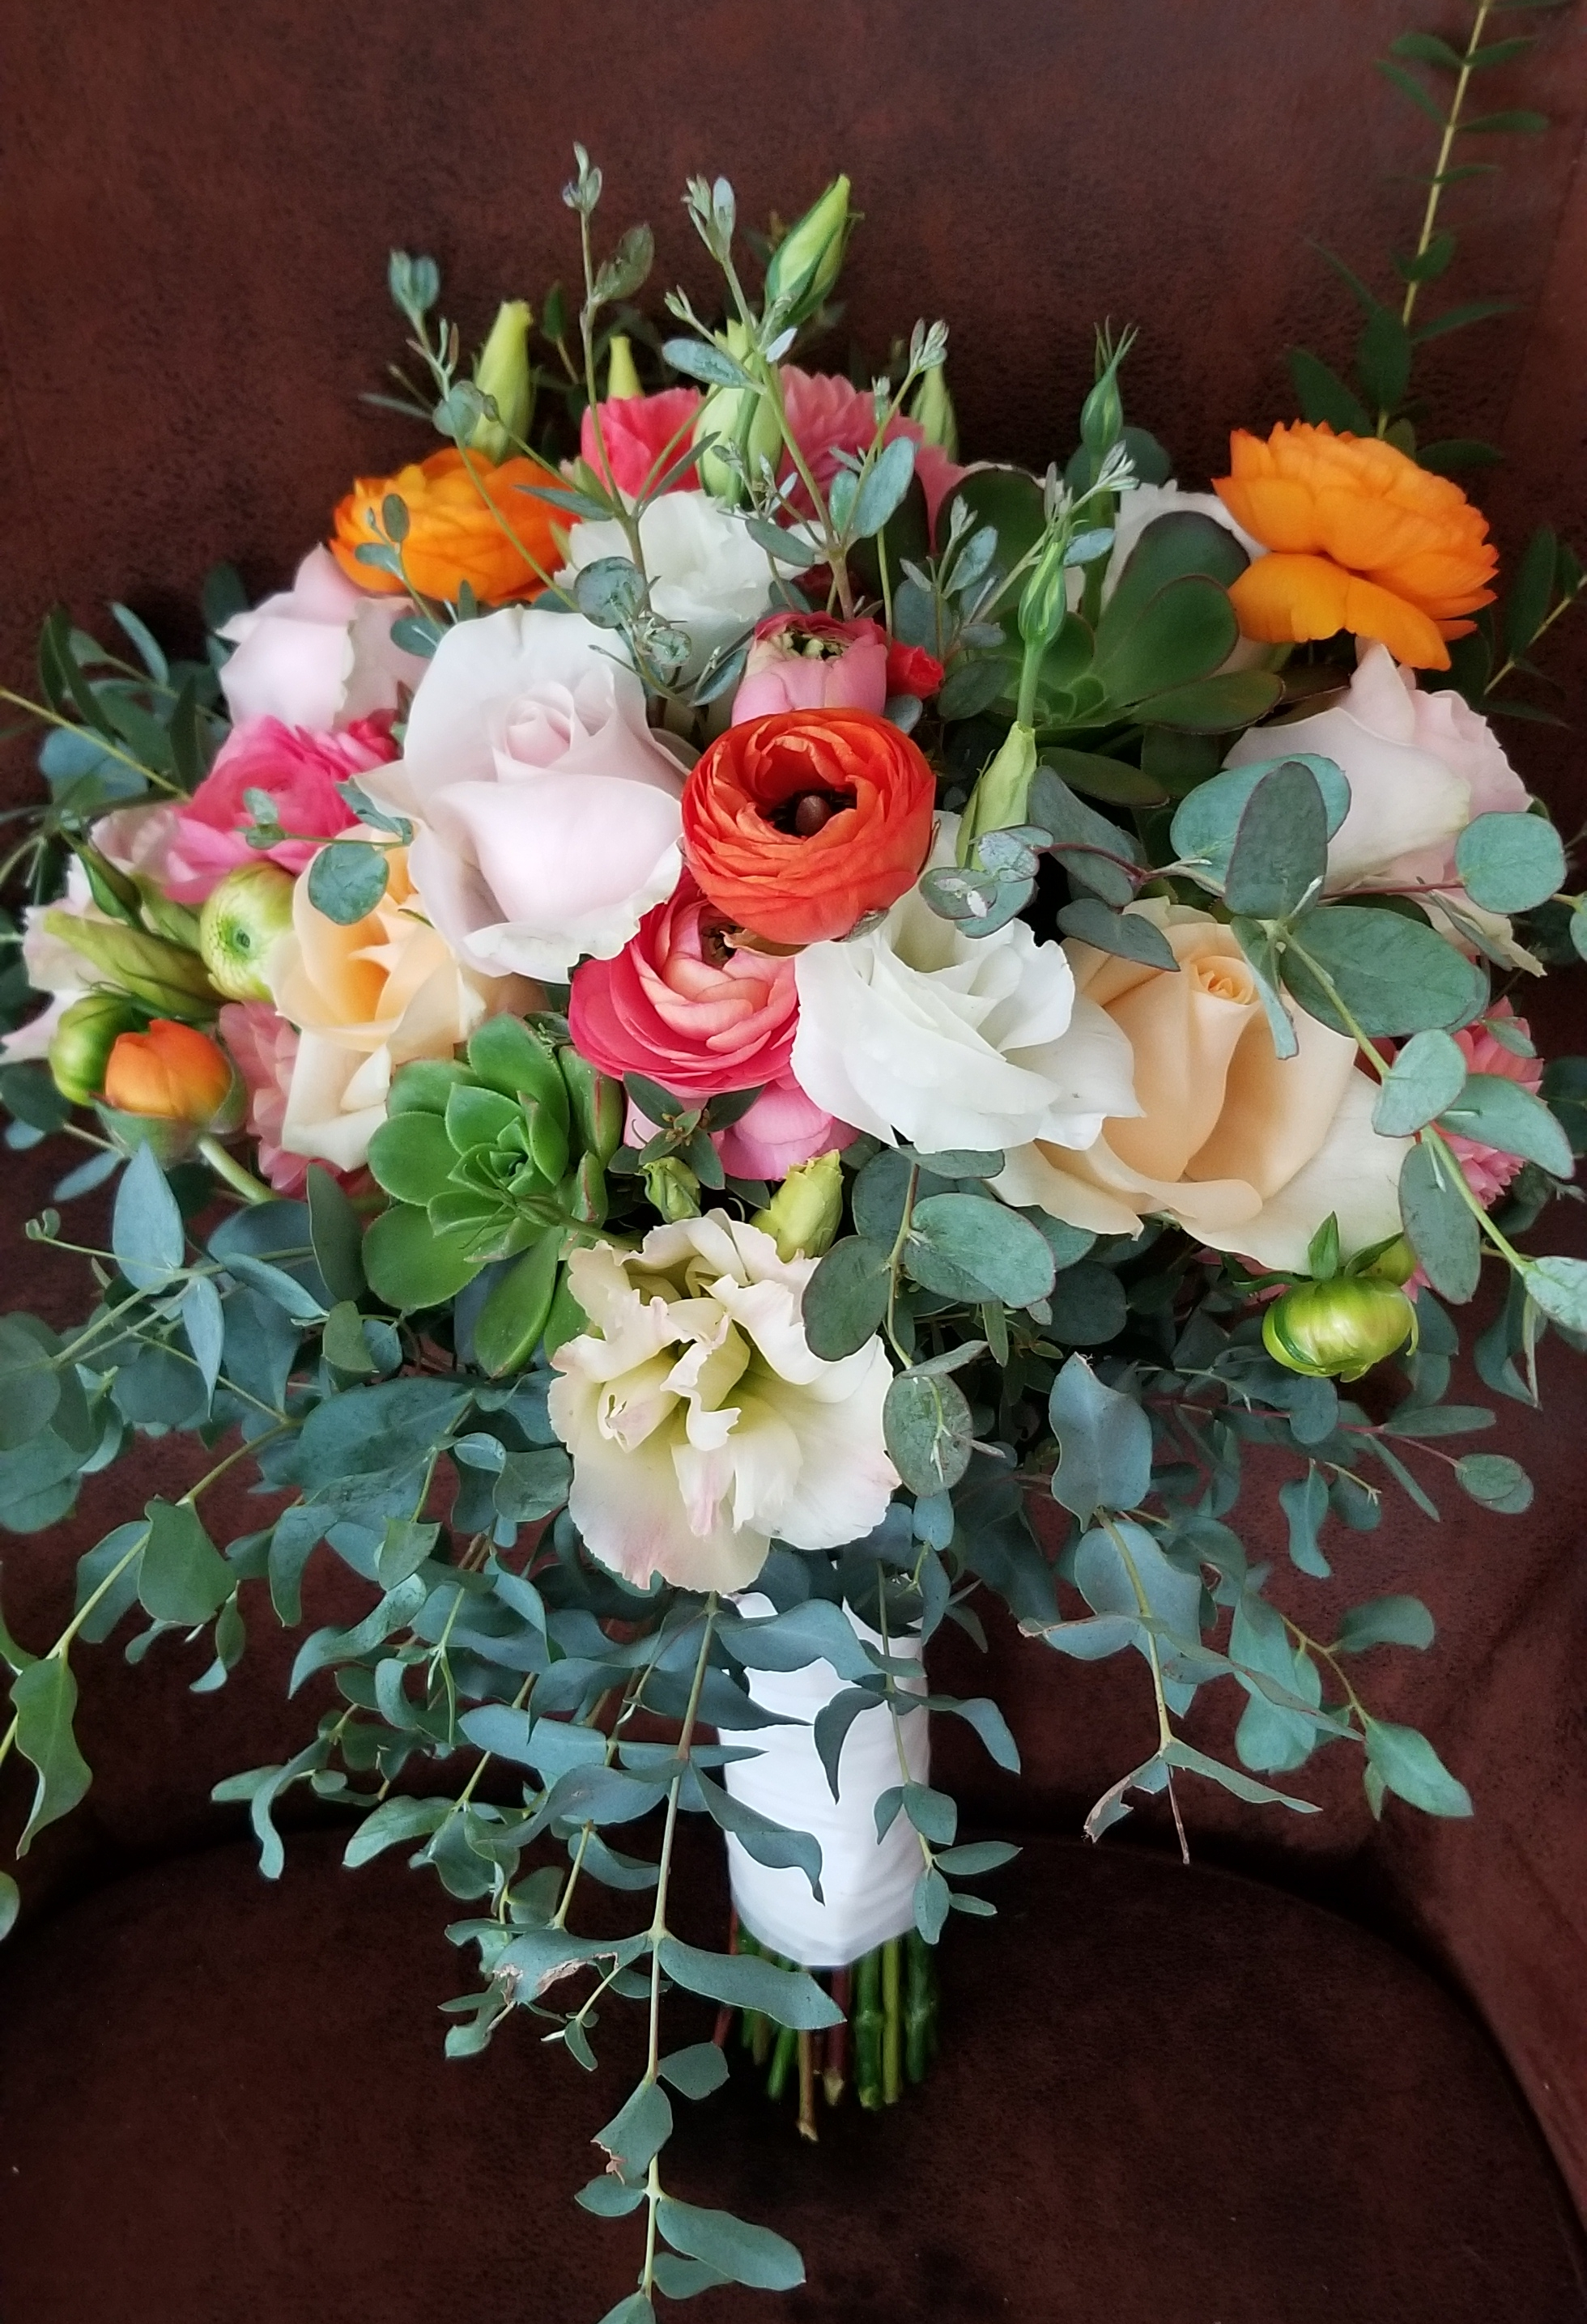 Bridal bouquet, loose leafy greens with pops of coral, gold and blush ranunculus, dahlia, garden rose.